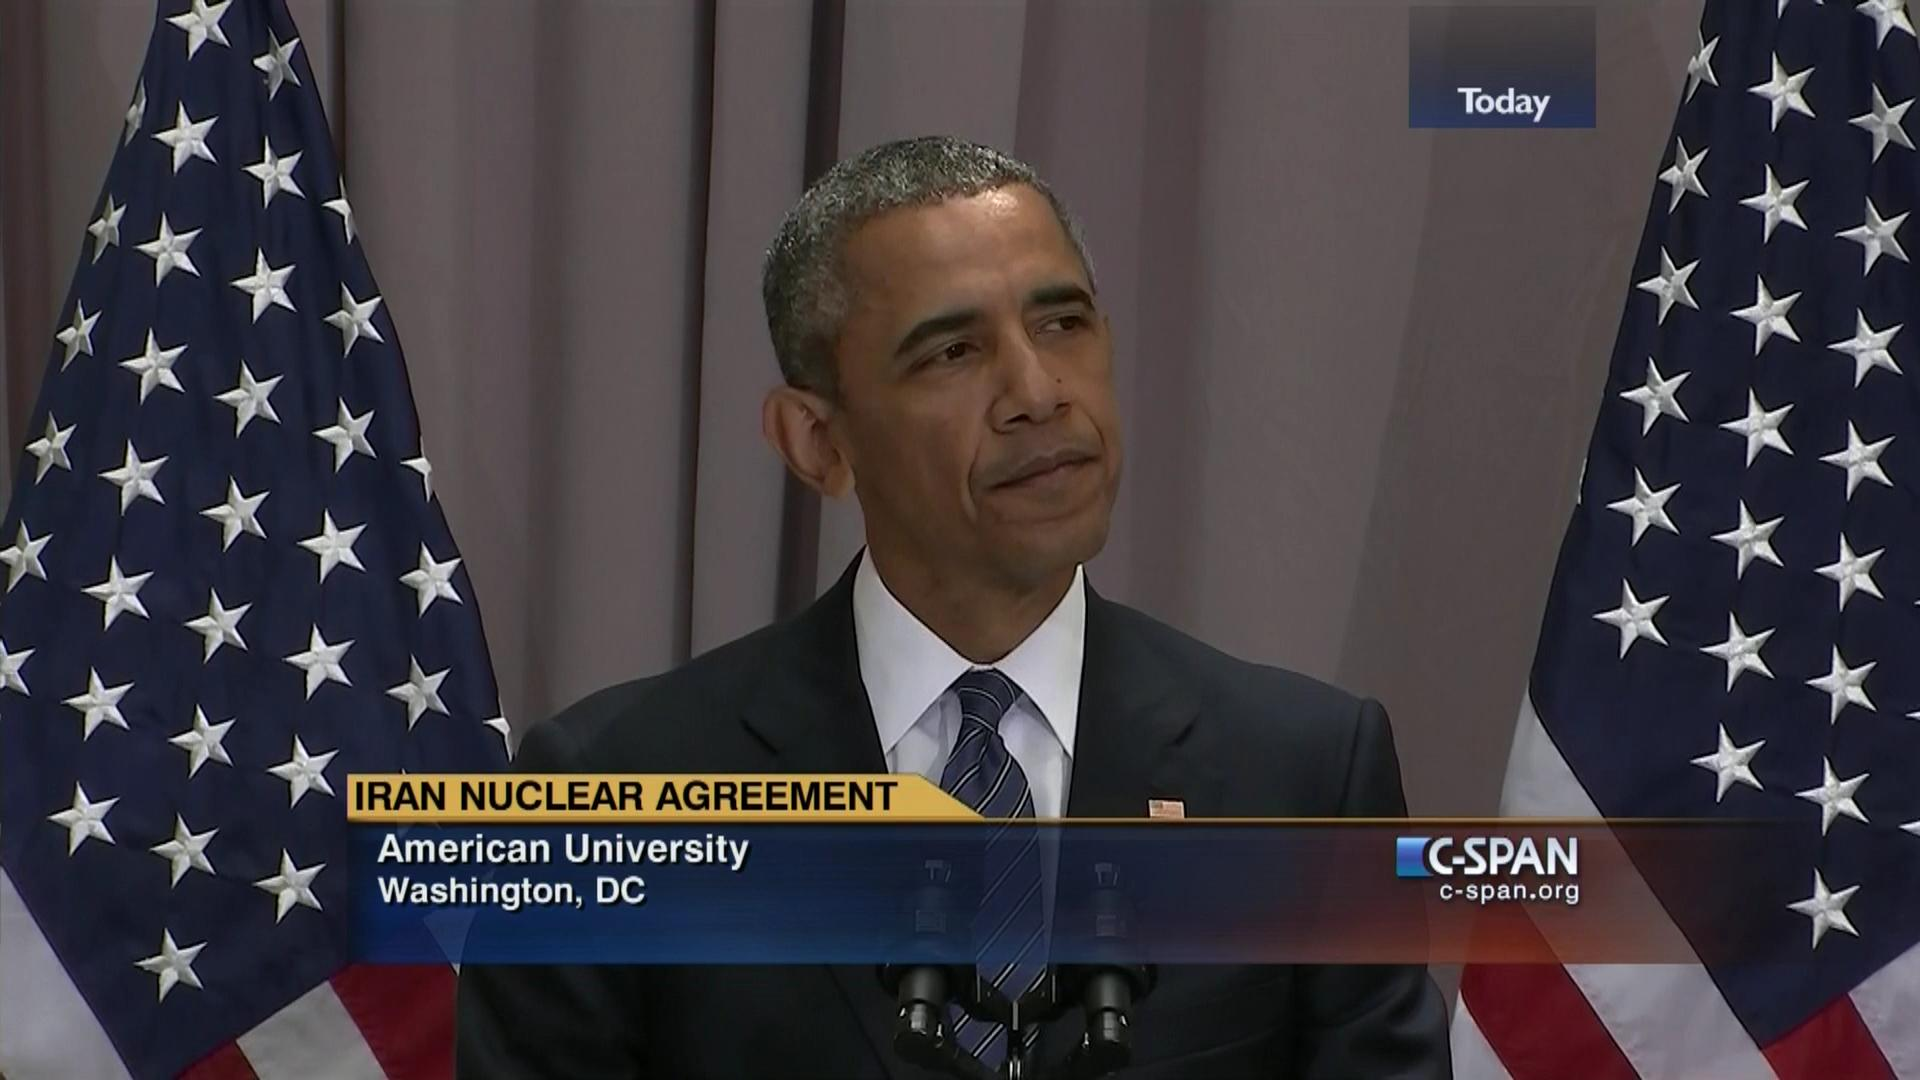 President Obama Remarks Iran Nuclear Agreement Aug 5 2015 Video